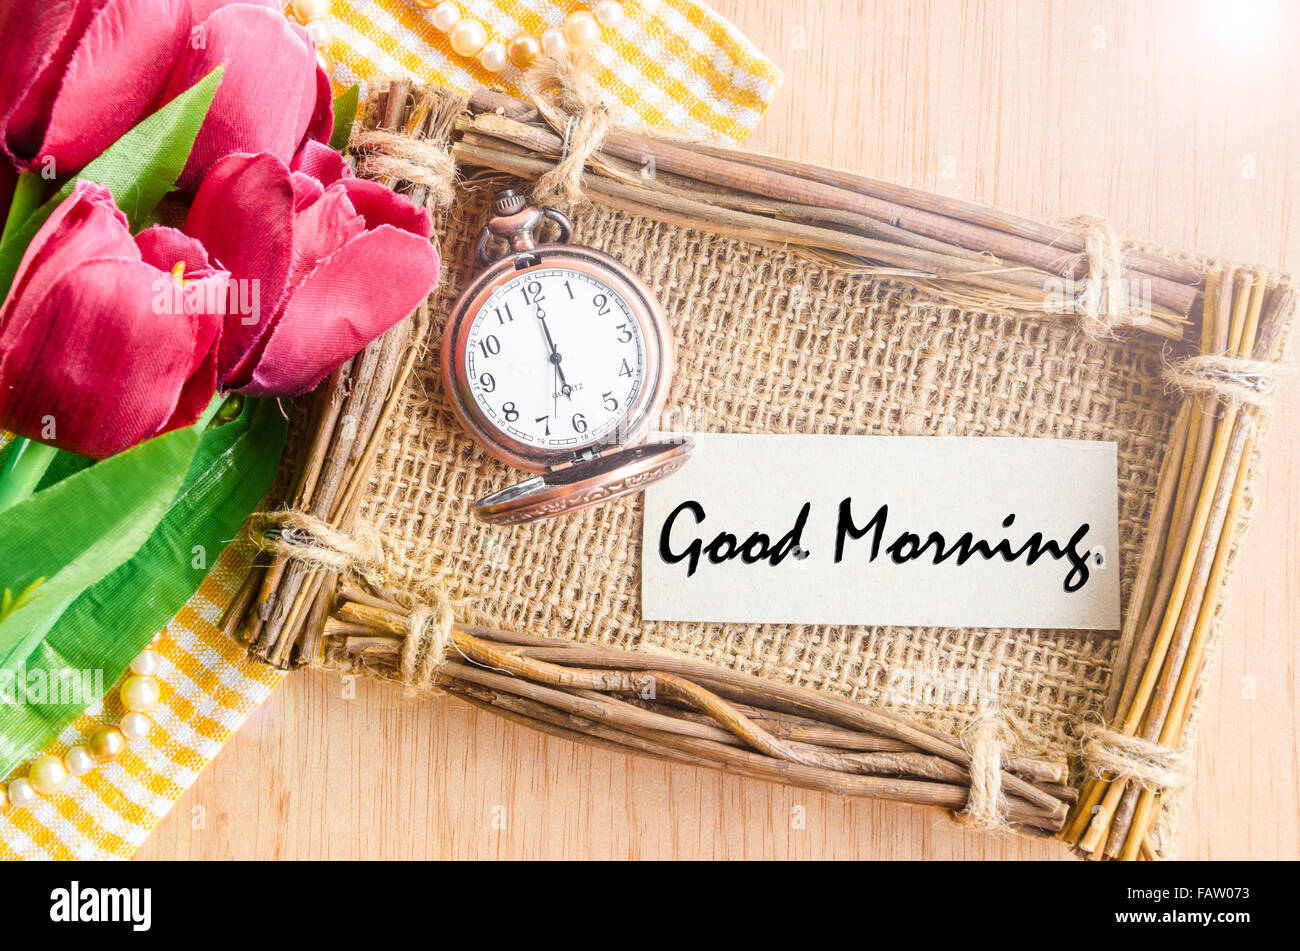 Good morning paper tag in sack photo frame and vintage alarm clock with red tulip on wooden background. - Stock Image